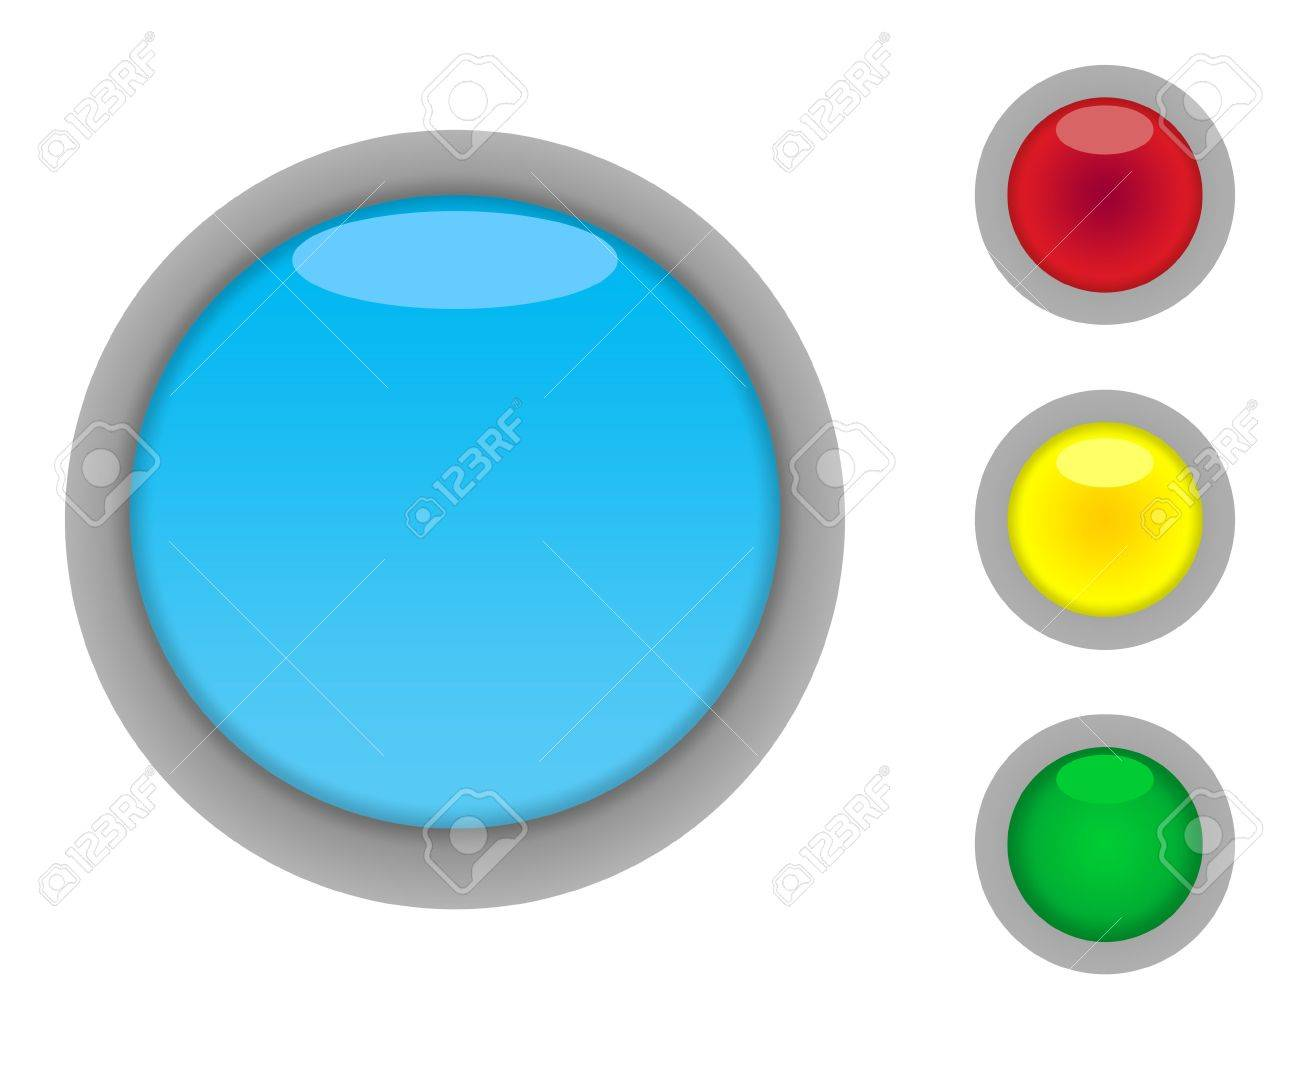 Set of four colorful glossy button icons with light effect isolated on white background with copy space Stock Photo - 6642407